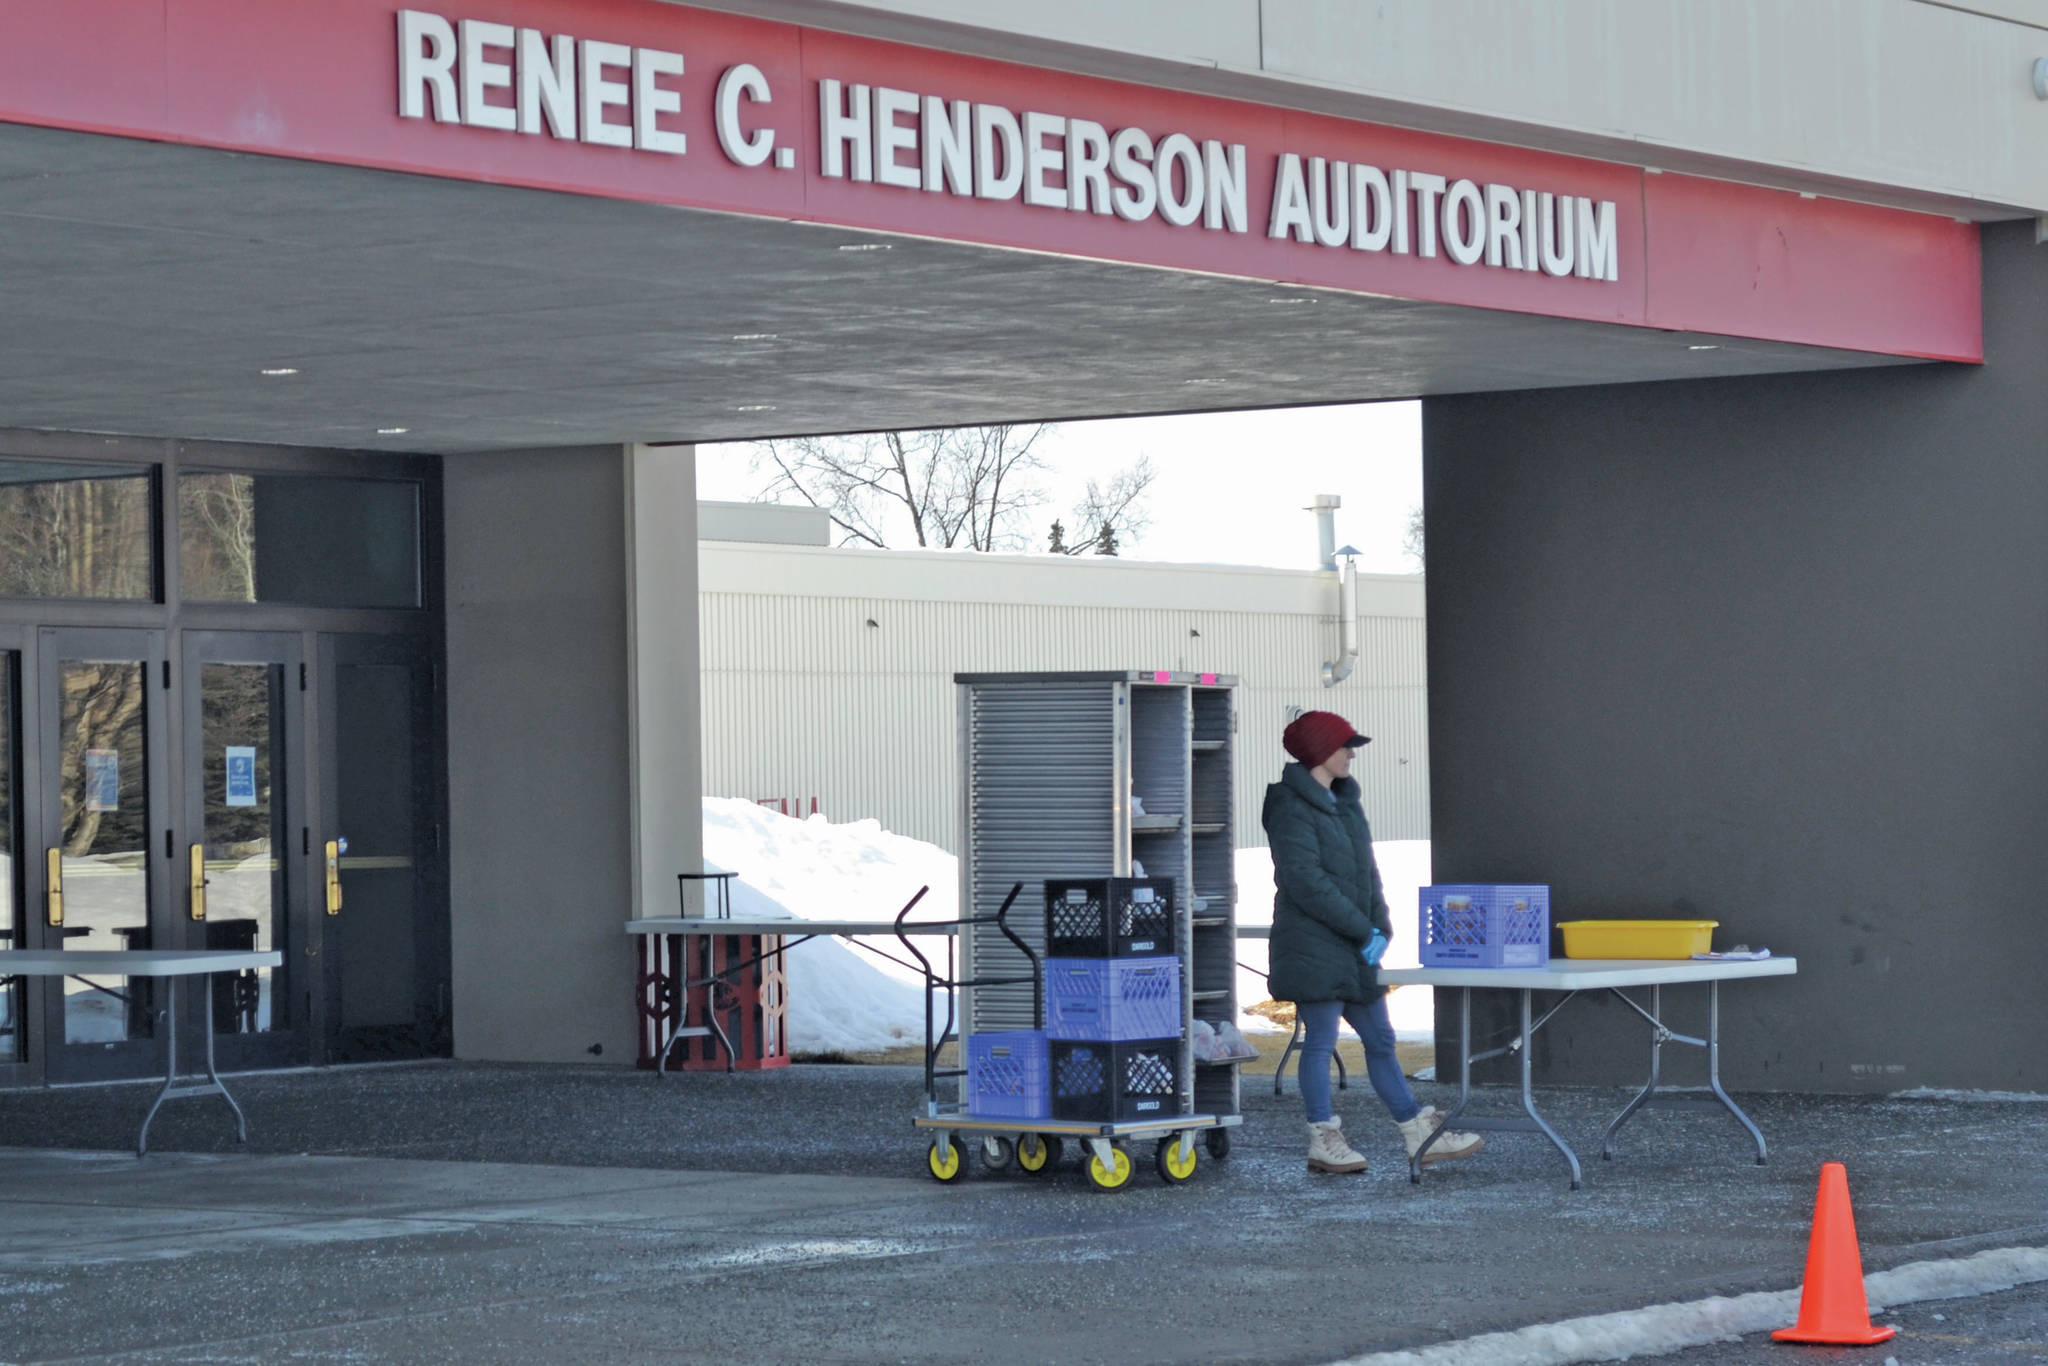 Kenai Peninsula Borough School District staff distribute student meal for lunch at Kenai Central High School on March 25, 2020, in Kenai, Alaska. (Photo by Victoria Petersen/Peninsula Clarion)